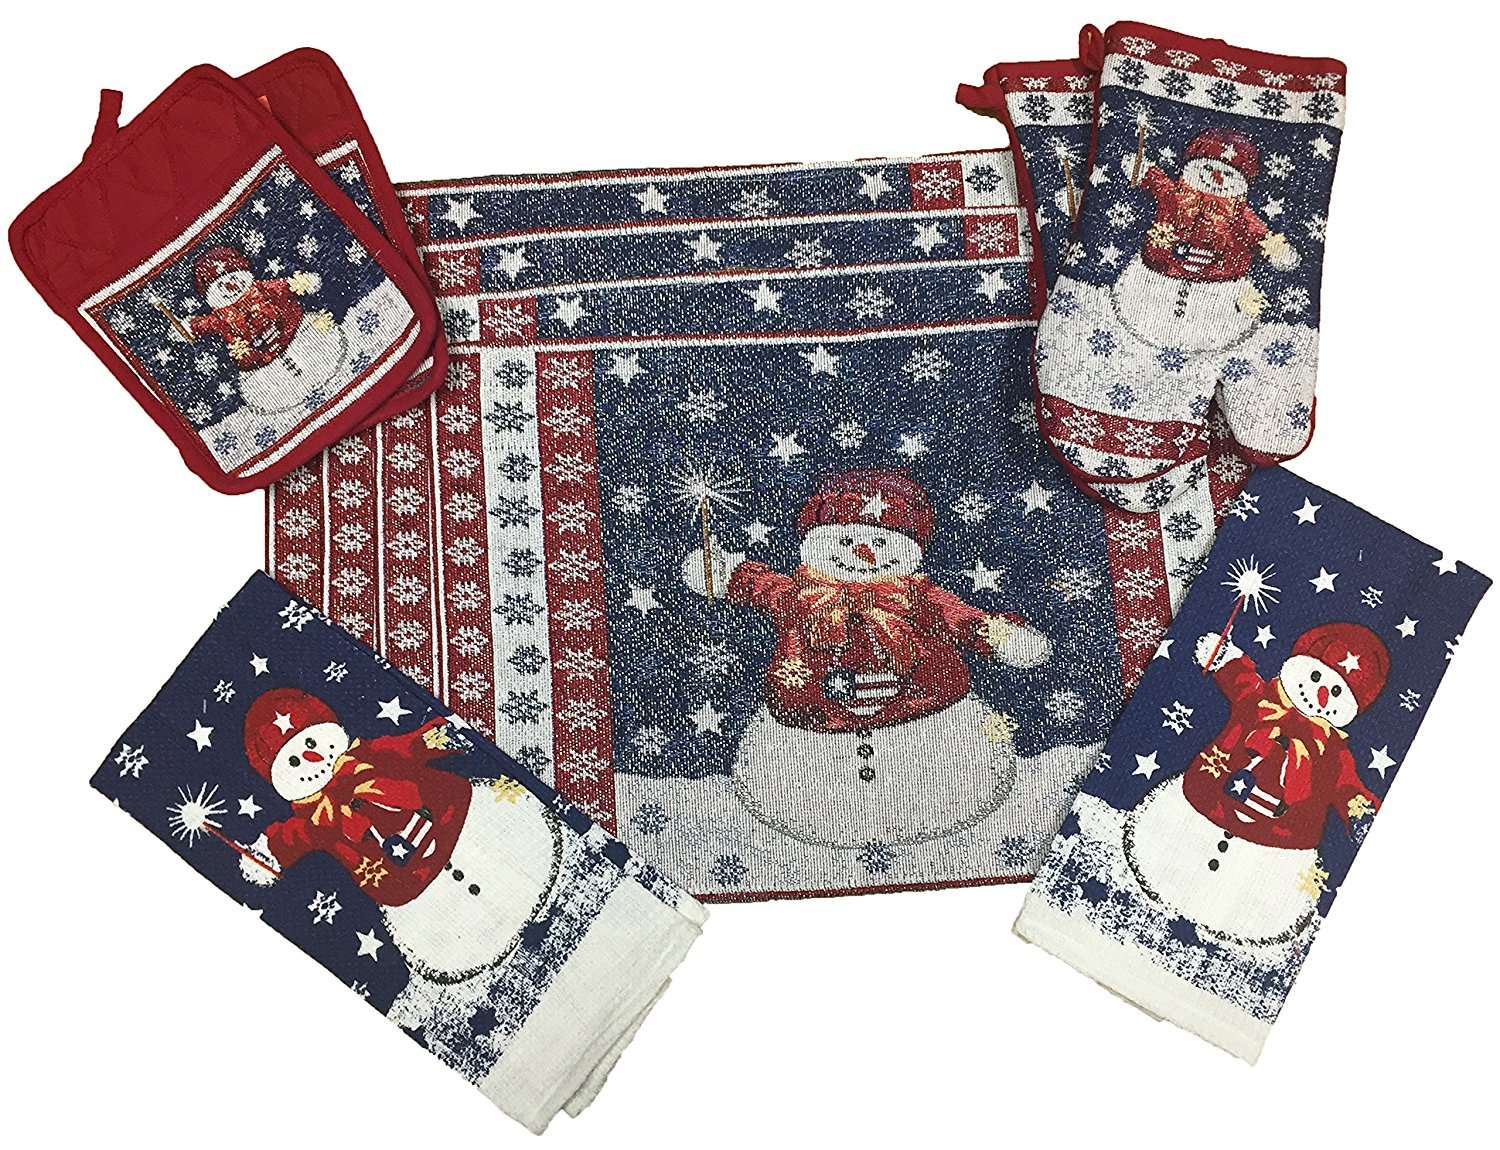 10 piece snowman christmas design tapestry kitchen set 2 oven mitts 2 pot holders